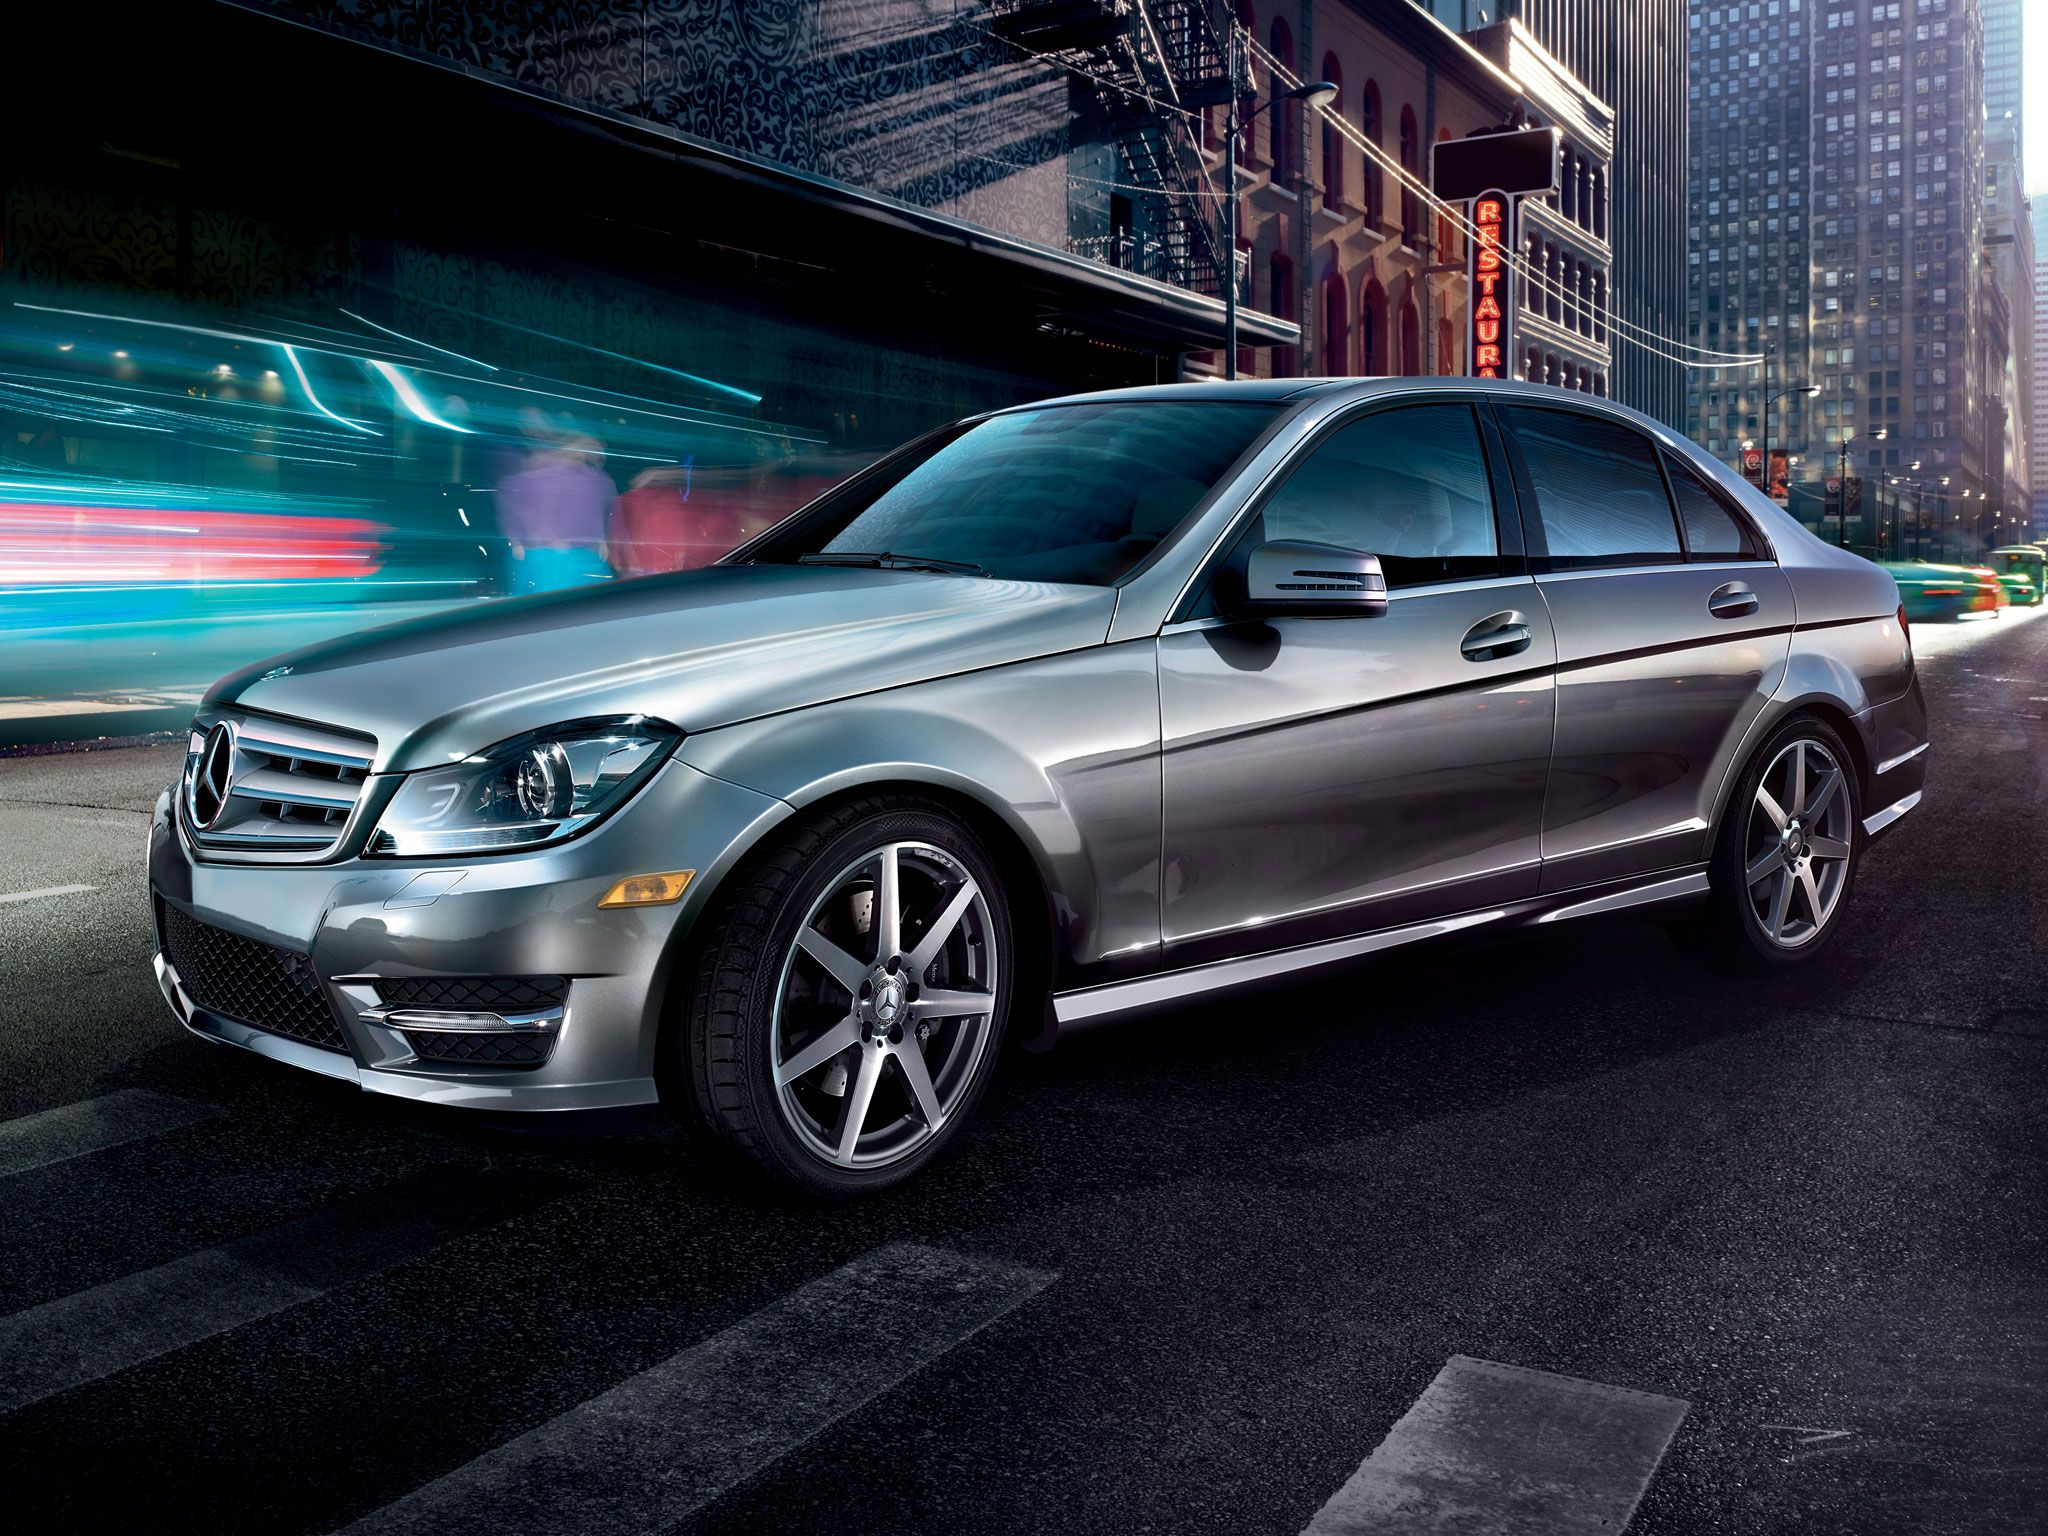 view the entire line of mercedes benz sports cars luxury cars suvs and vehicles organized by class and style discover our award winning luxury vehicles - Mercedes Benz 2014 Sports Car